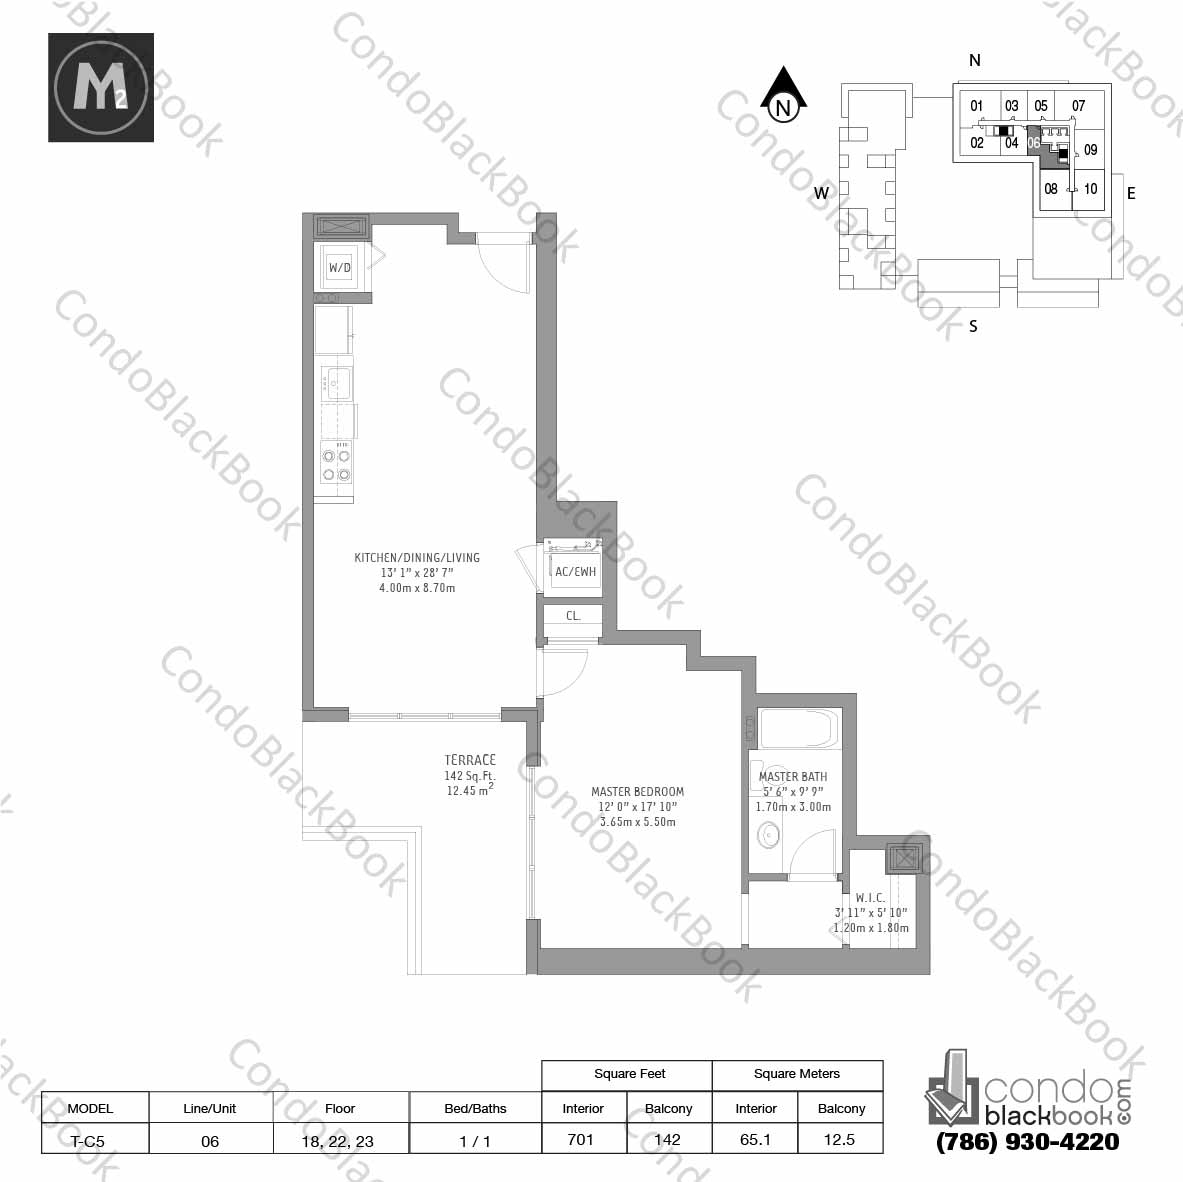 Floor plan for Midtown 2 Midtown Miami, model T-C5, line 06,  1 / 1 bedrooms, 701 sq ft